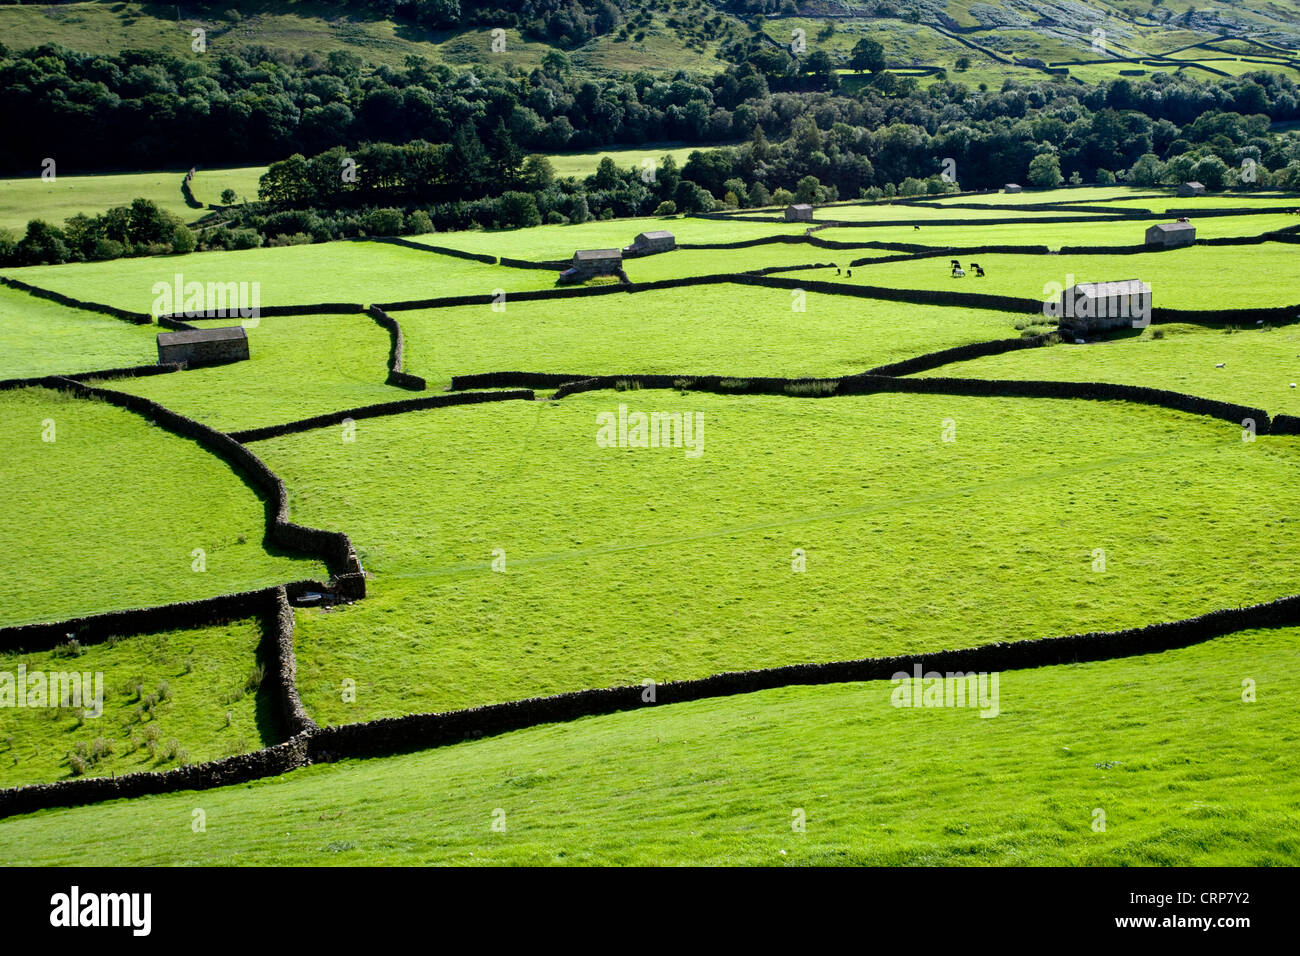 Field Barns near Gunnerside, Swaledale, North Yorkshire Dales, England - Stock Image